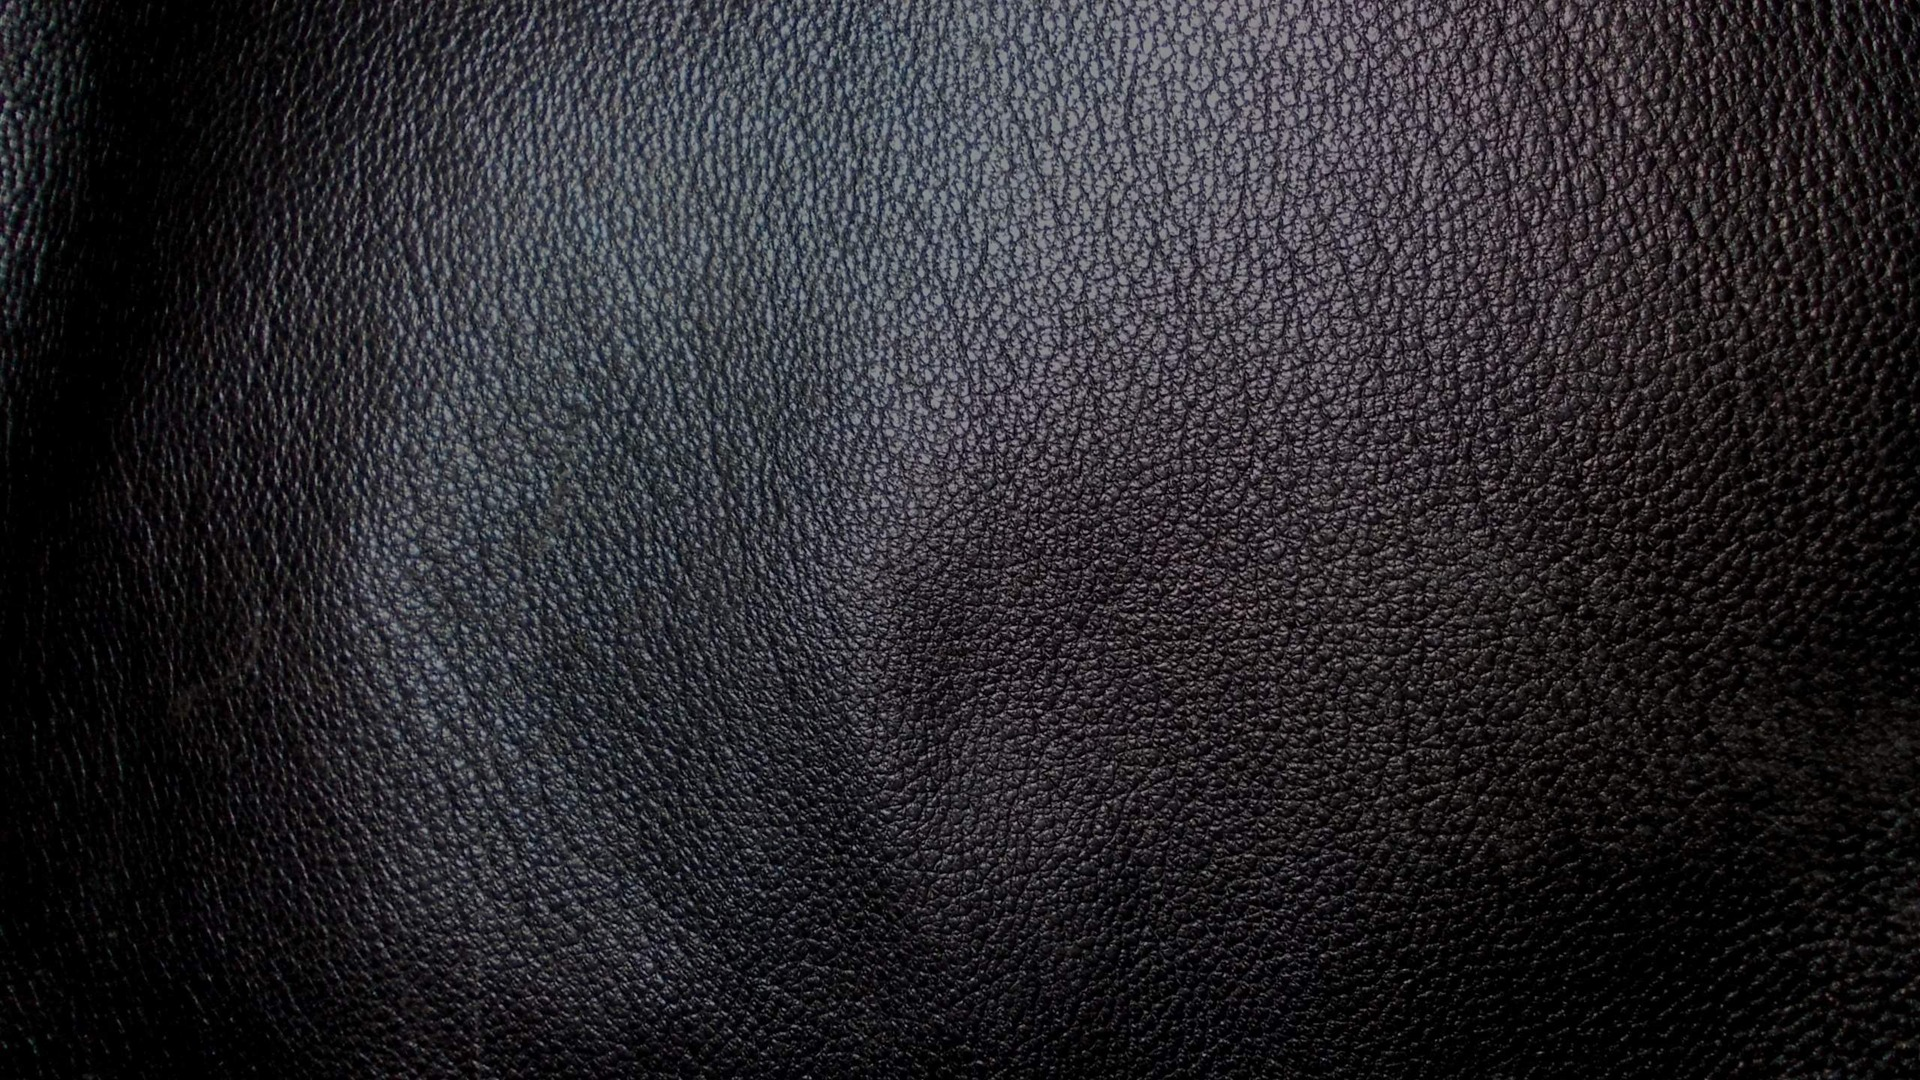 1000 images about textures on pinterest texture rust